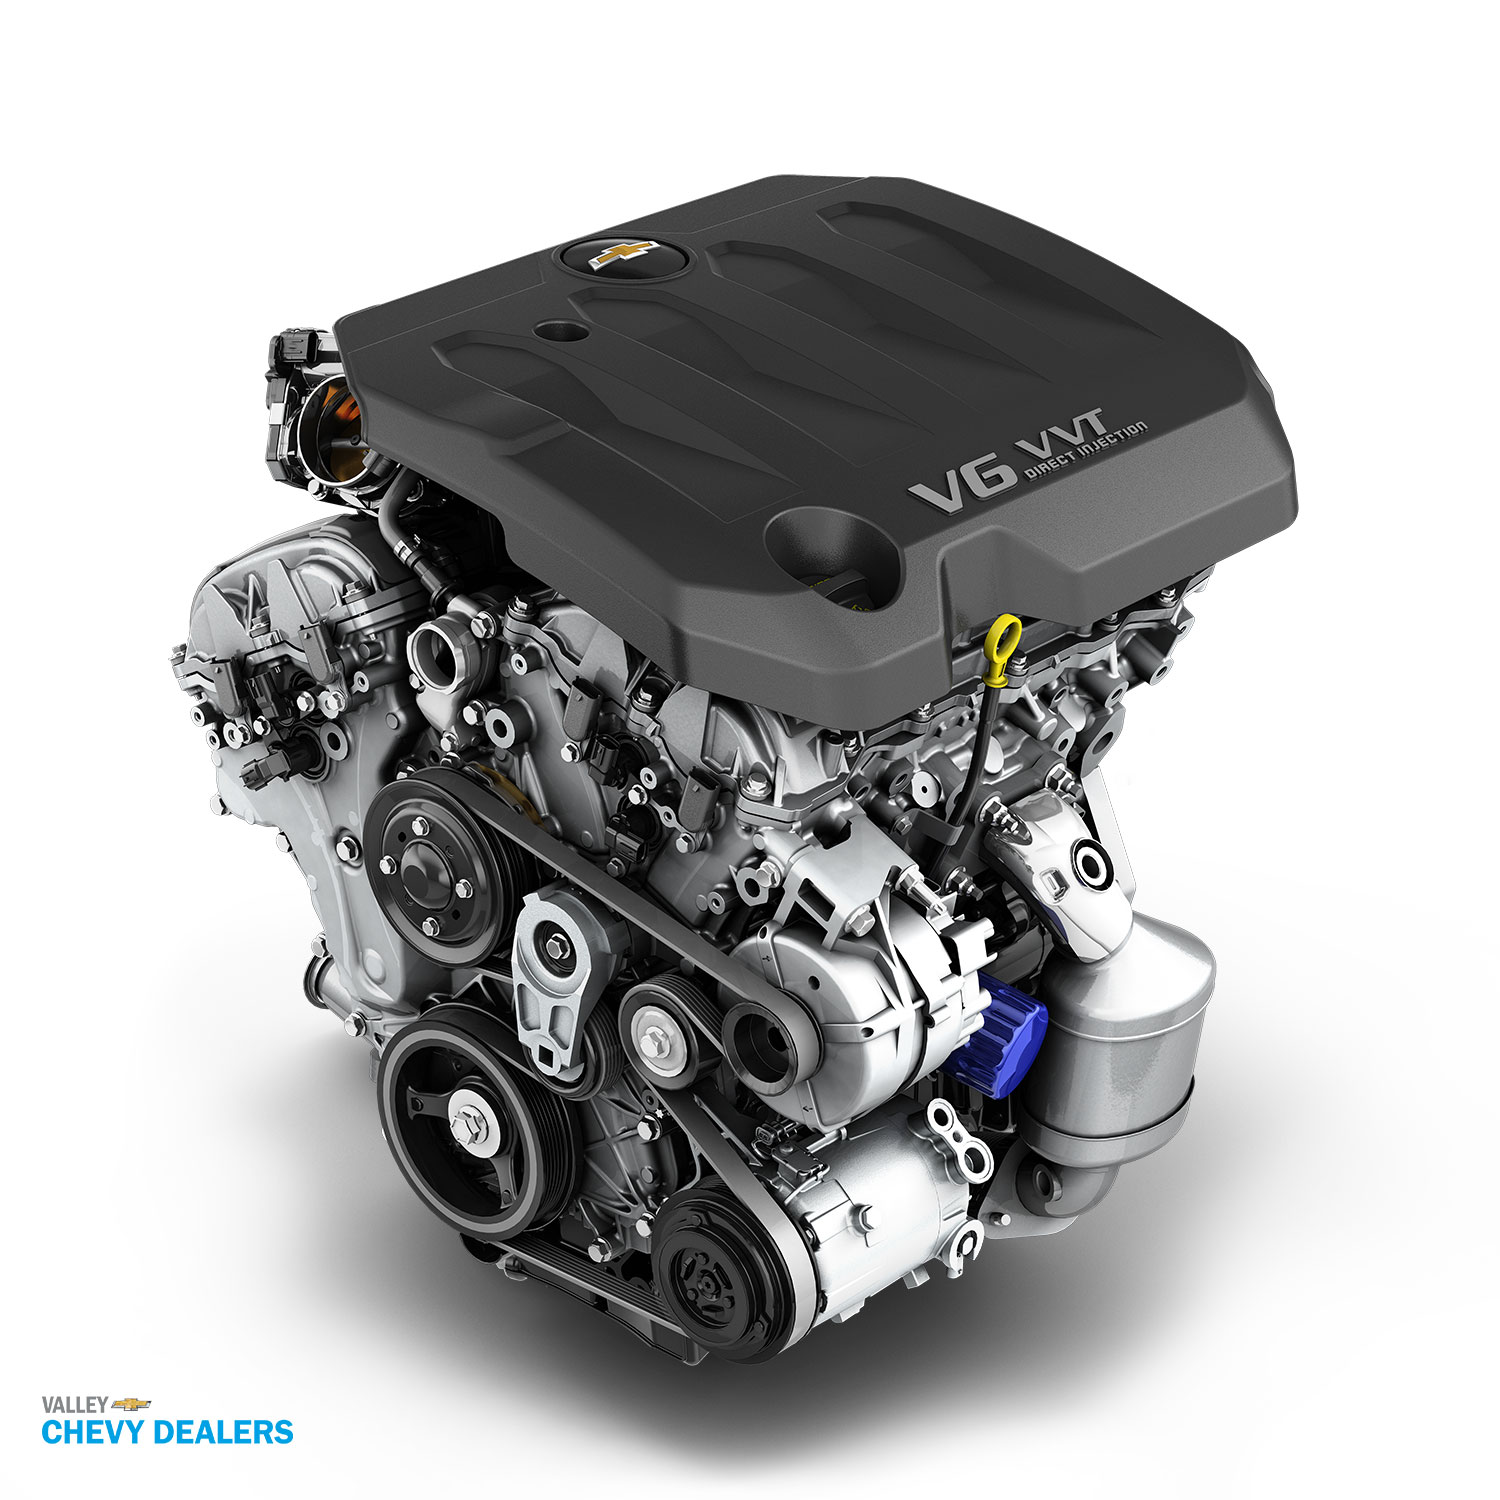 Valley Chevy - 2017 Chevrolet Engine Options to Choose From - LFX V6 3.6L